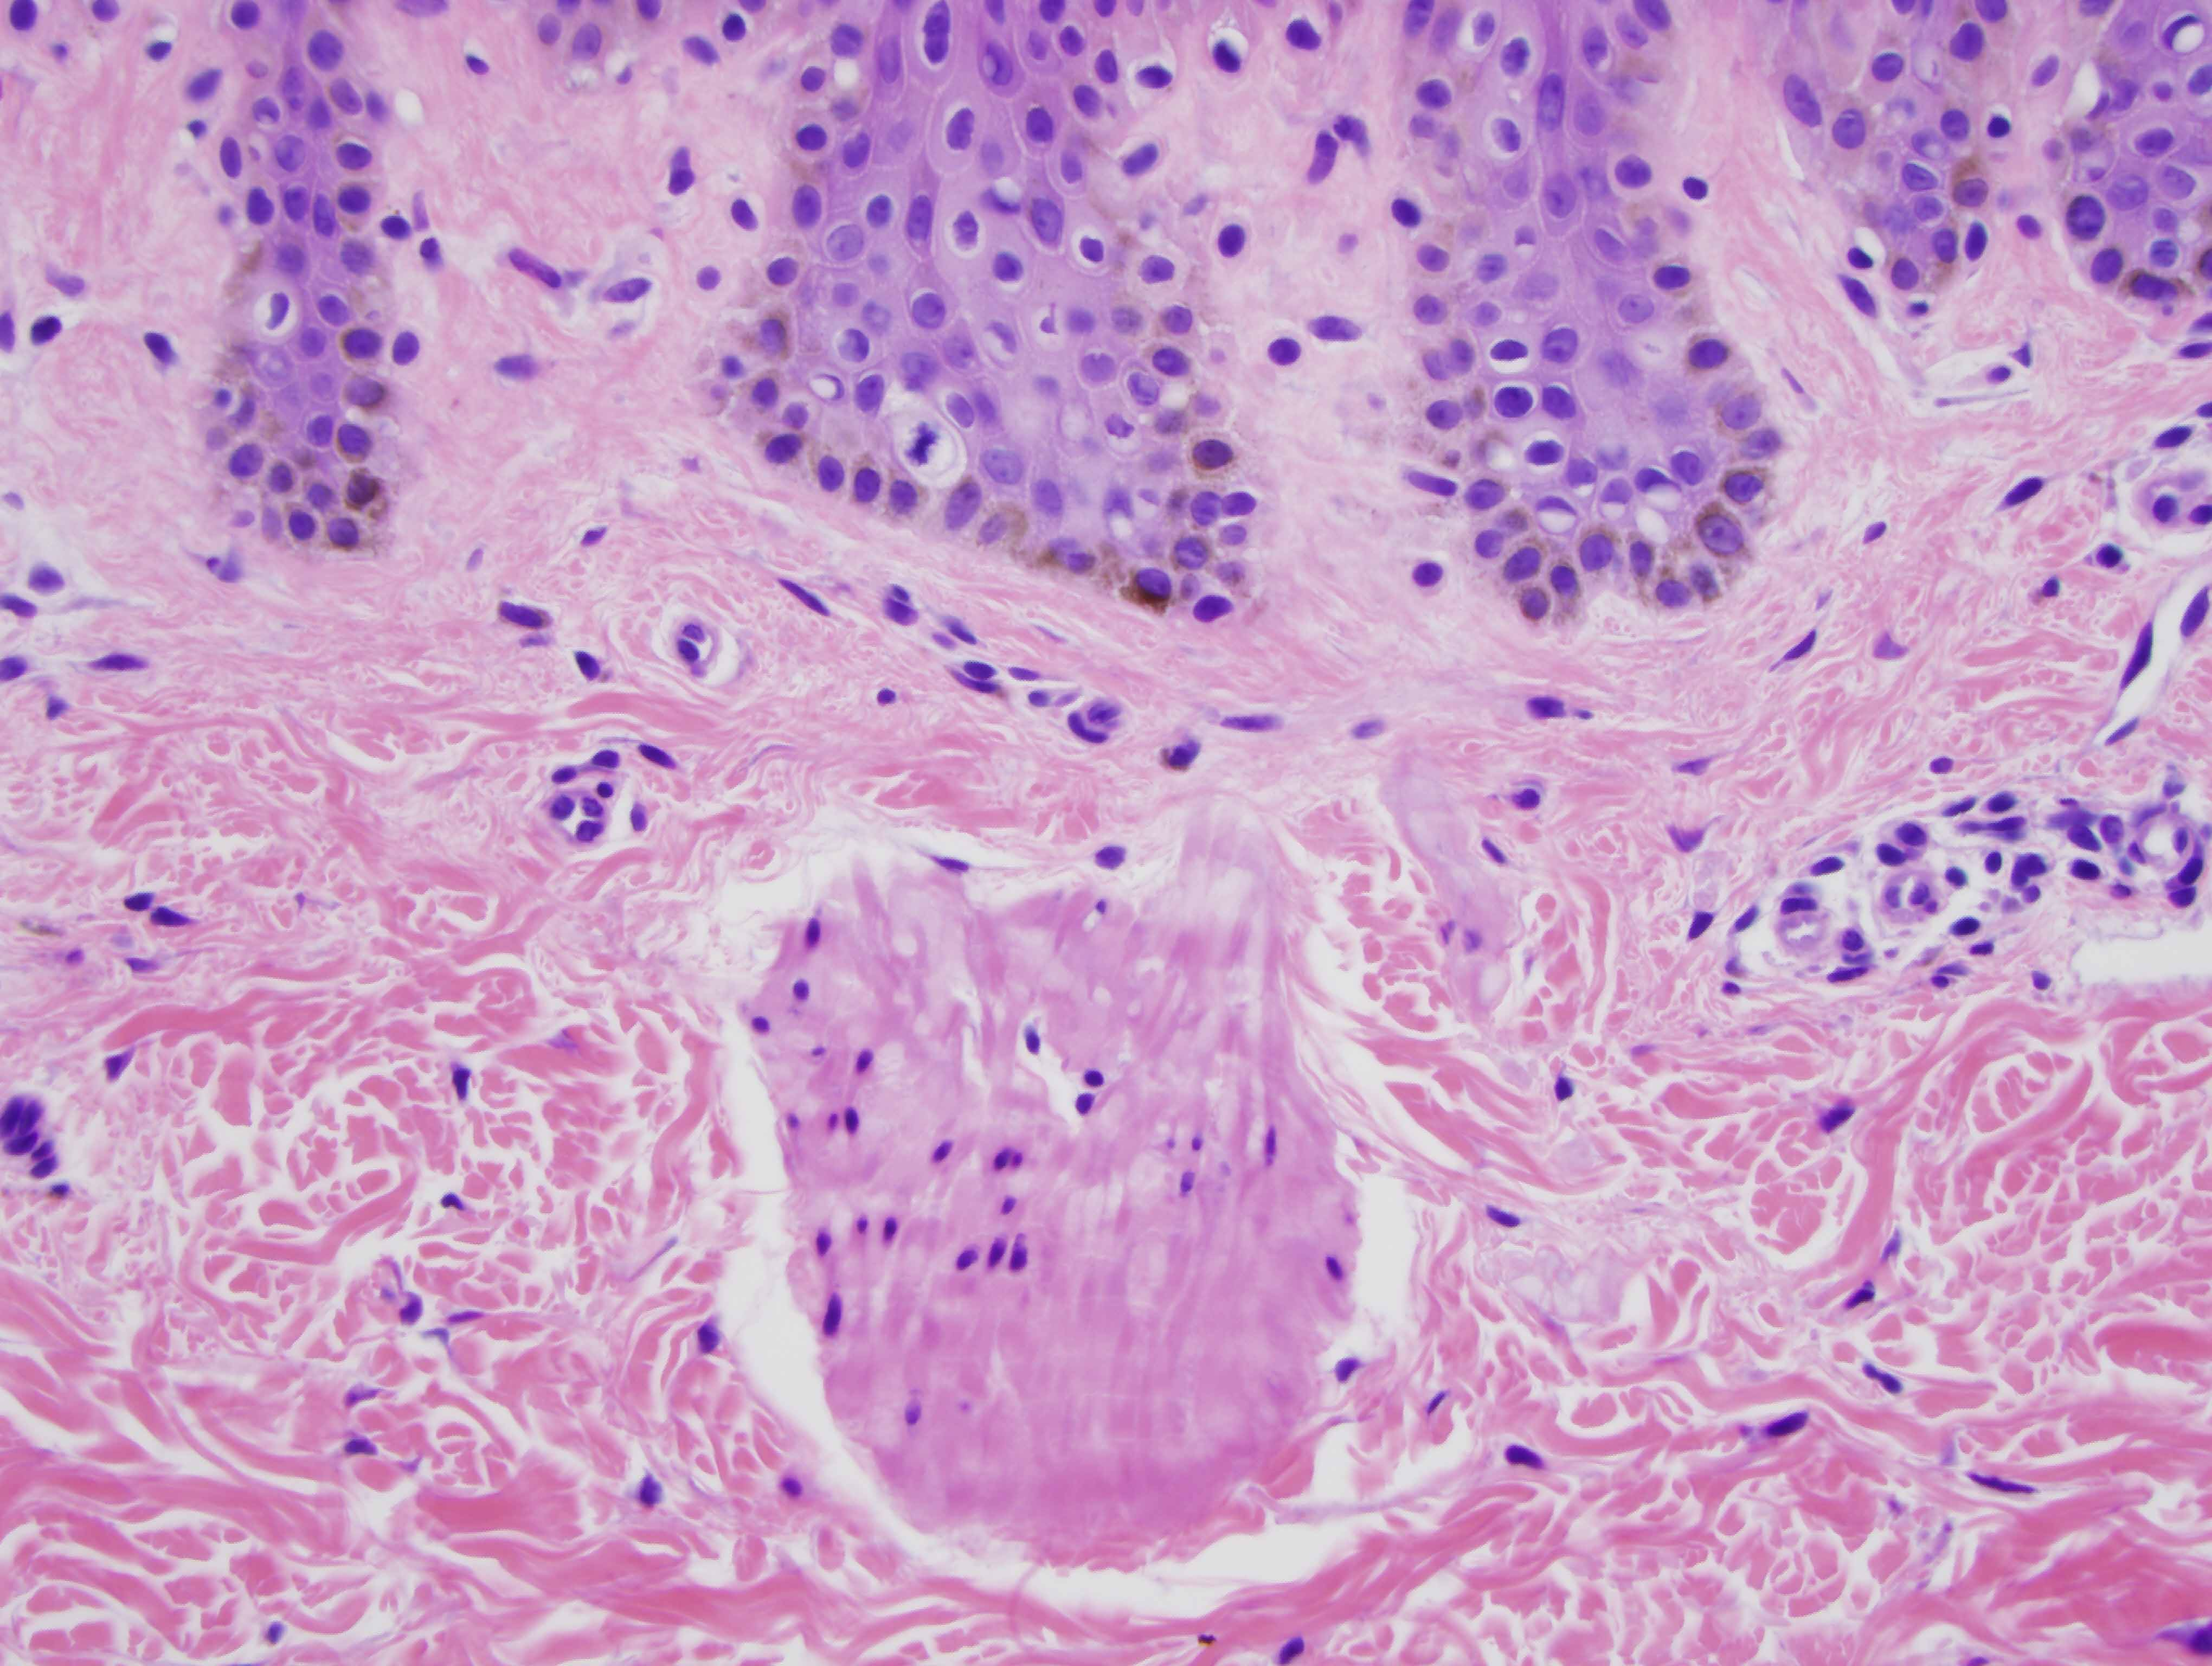 Slide 4: TThere are a few bundles of smooth muscle located within the superficial dermis unassociated with any intact follicular structure suggesting that the smooth muscle observed is a hamartomatous process.